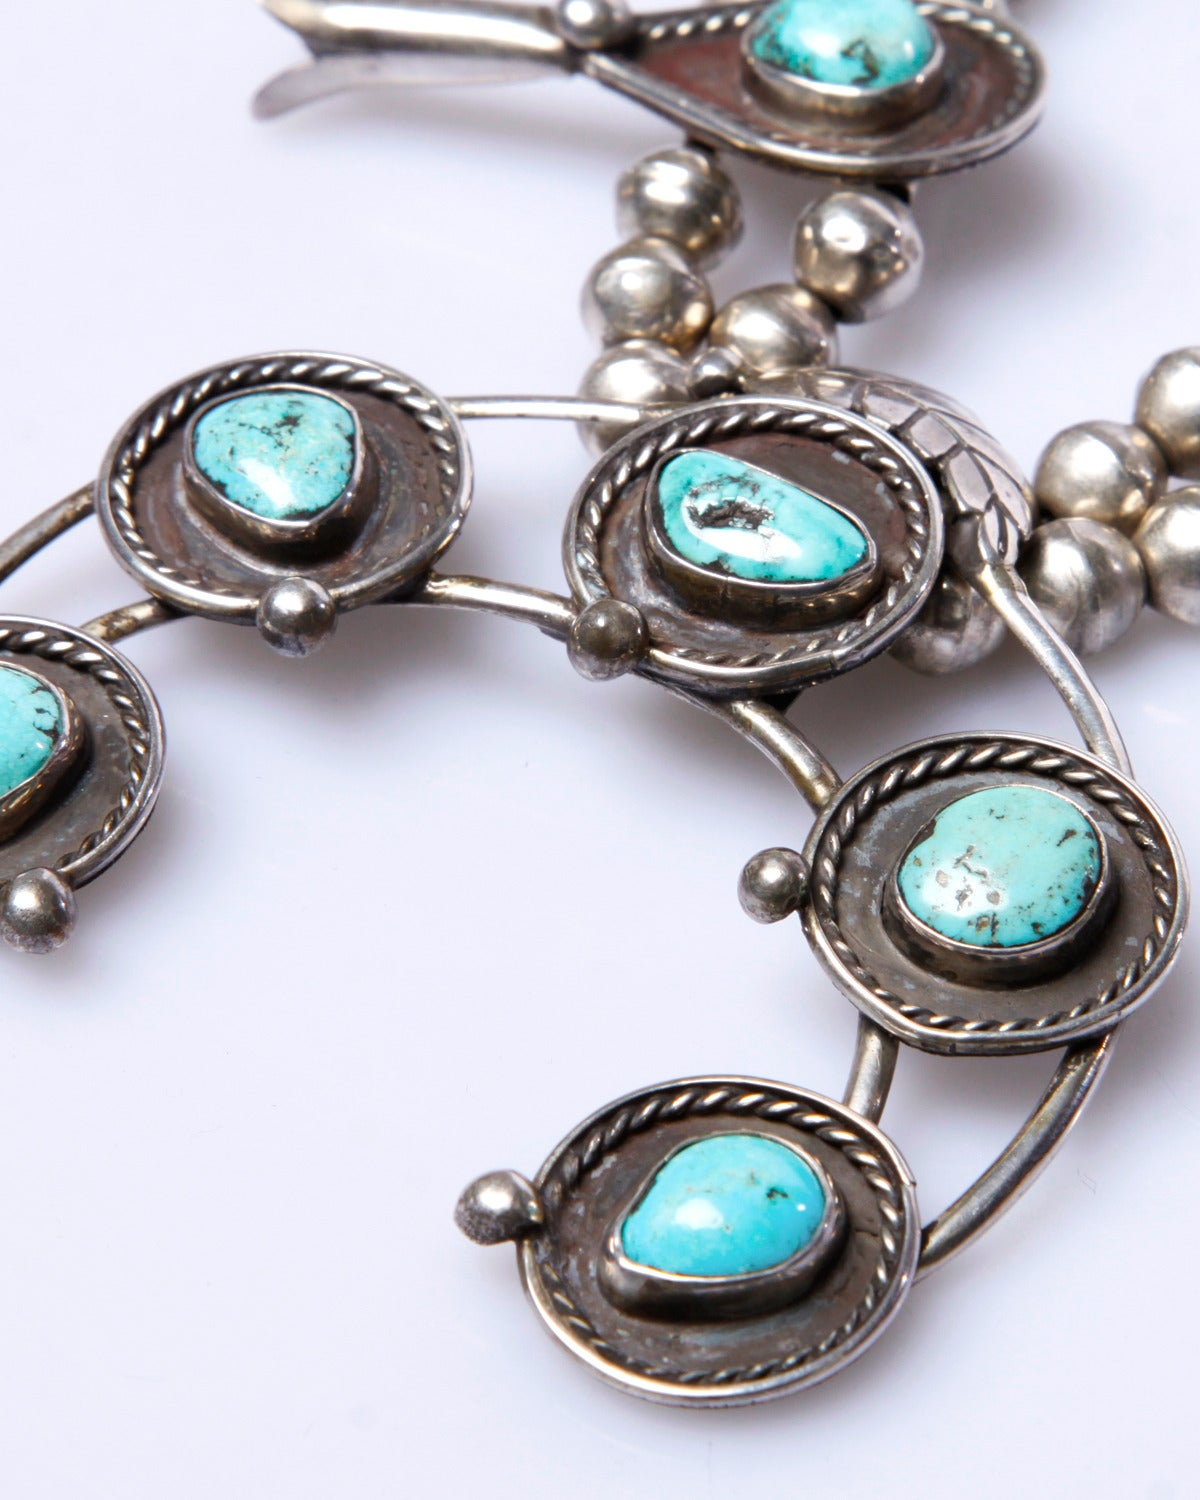 Native American Massive Vintage Old Pawn Sterling Silver + Turquoise Squash Blossom Necklace For Sale